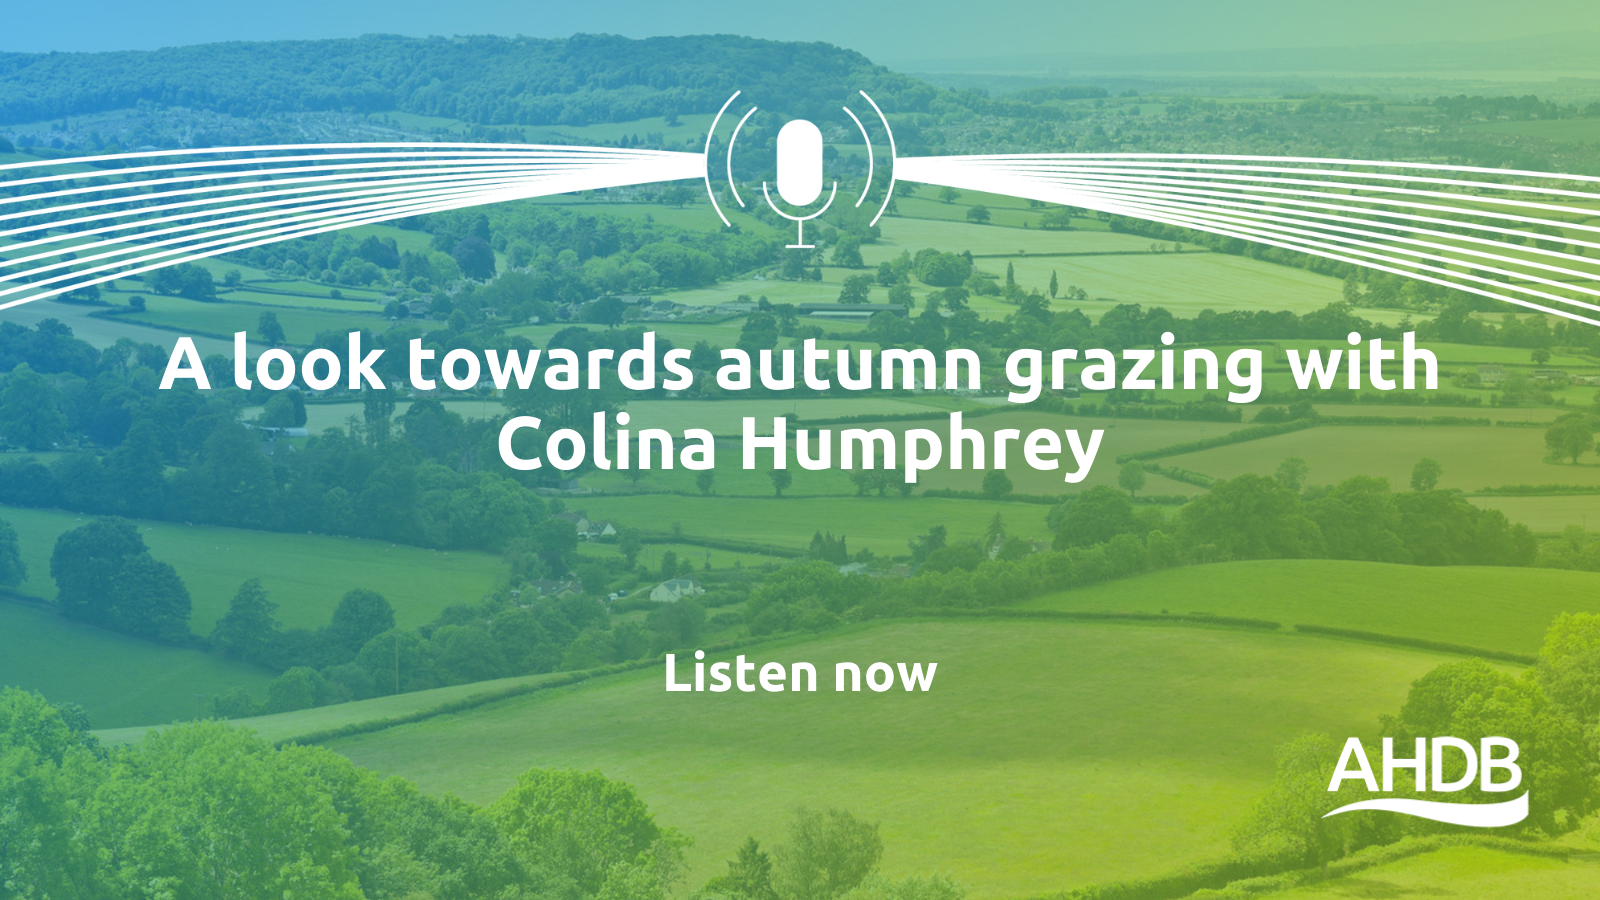 In this episode of the Food & Farming podcast, Nic Renison talks to Colina Humphrey, sheep farmer and self-confessed grass addict